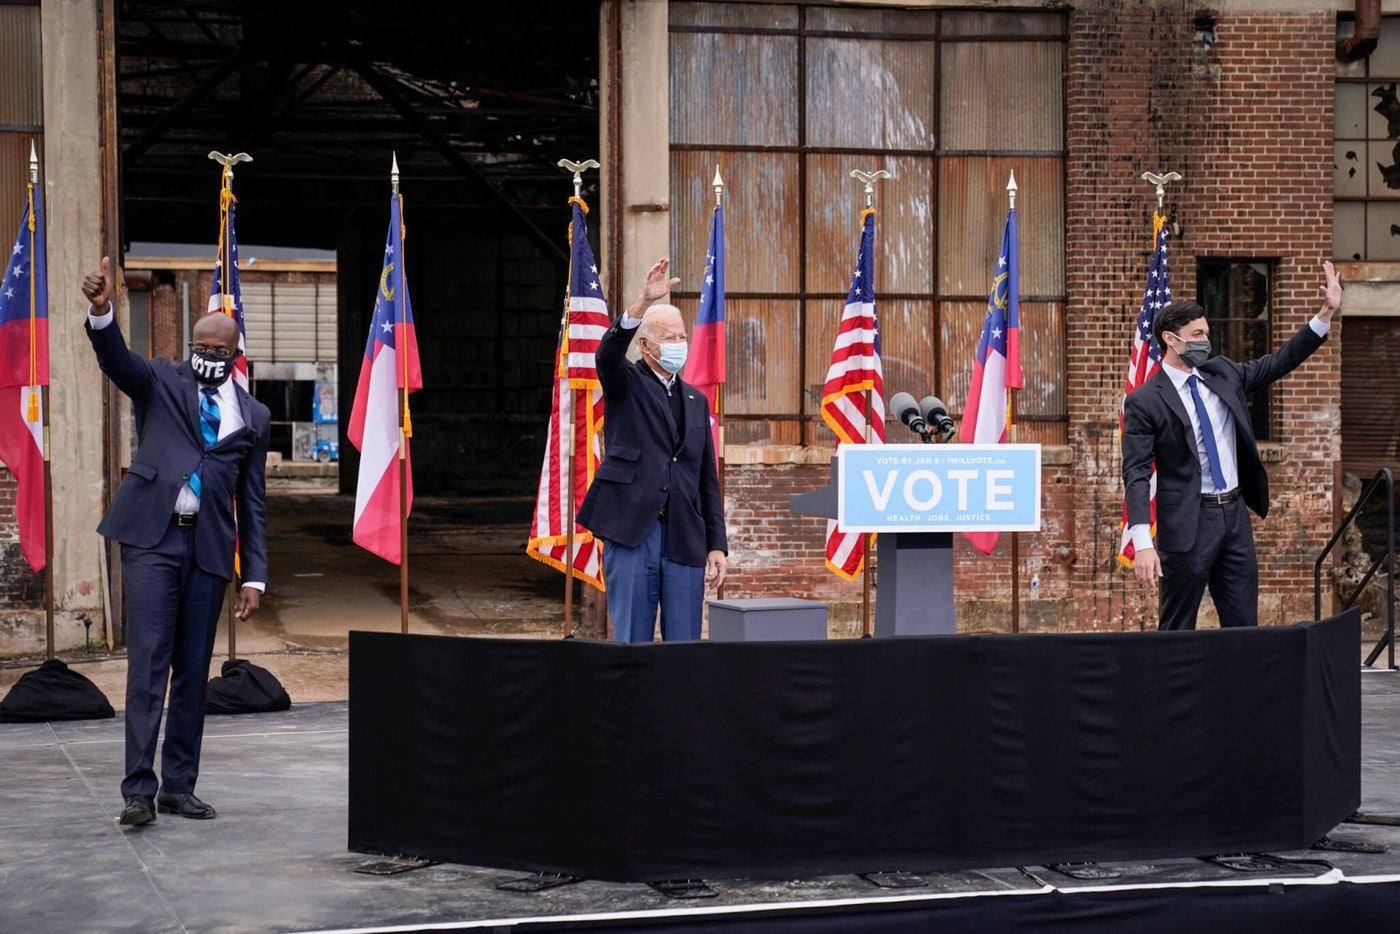 ATLANTA, GA - DECEMBER 15: Flanked by U.S. Democratic Senate candidates Rev. Raphael Warnock (L) and Jon Ossoff (R), U.S. President-elect Joe Biden gestures to the crowd at the end of a drive-in rally at Pullman Yard on December 15, 2020 in Atlanta, Georgia. (Photo by Drew Angerer/Getty Images)